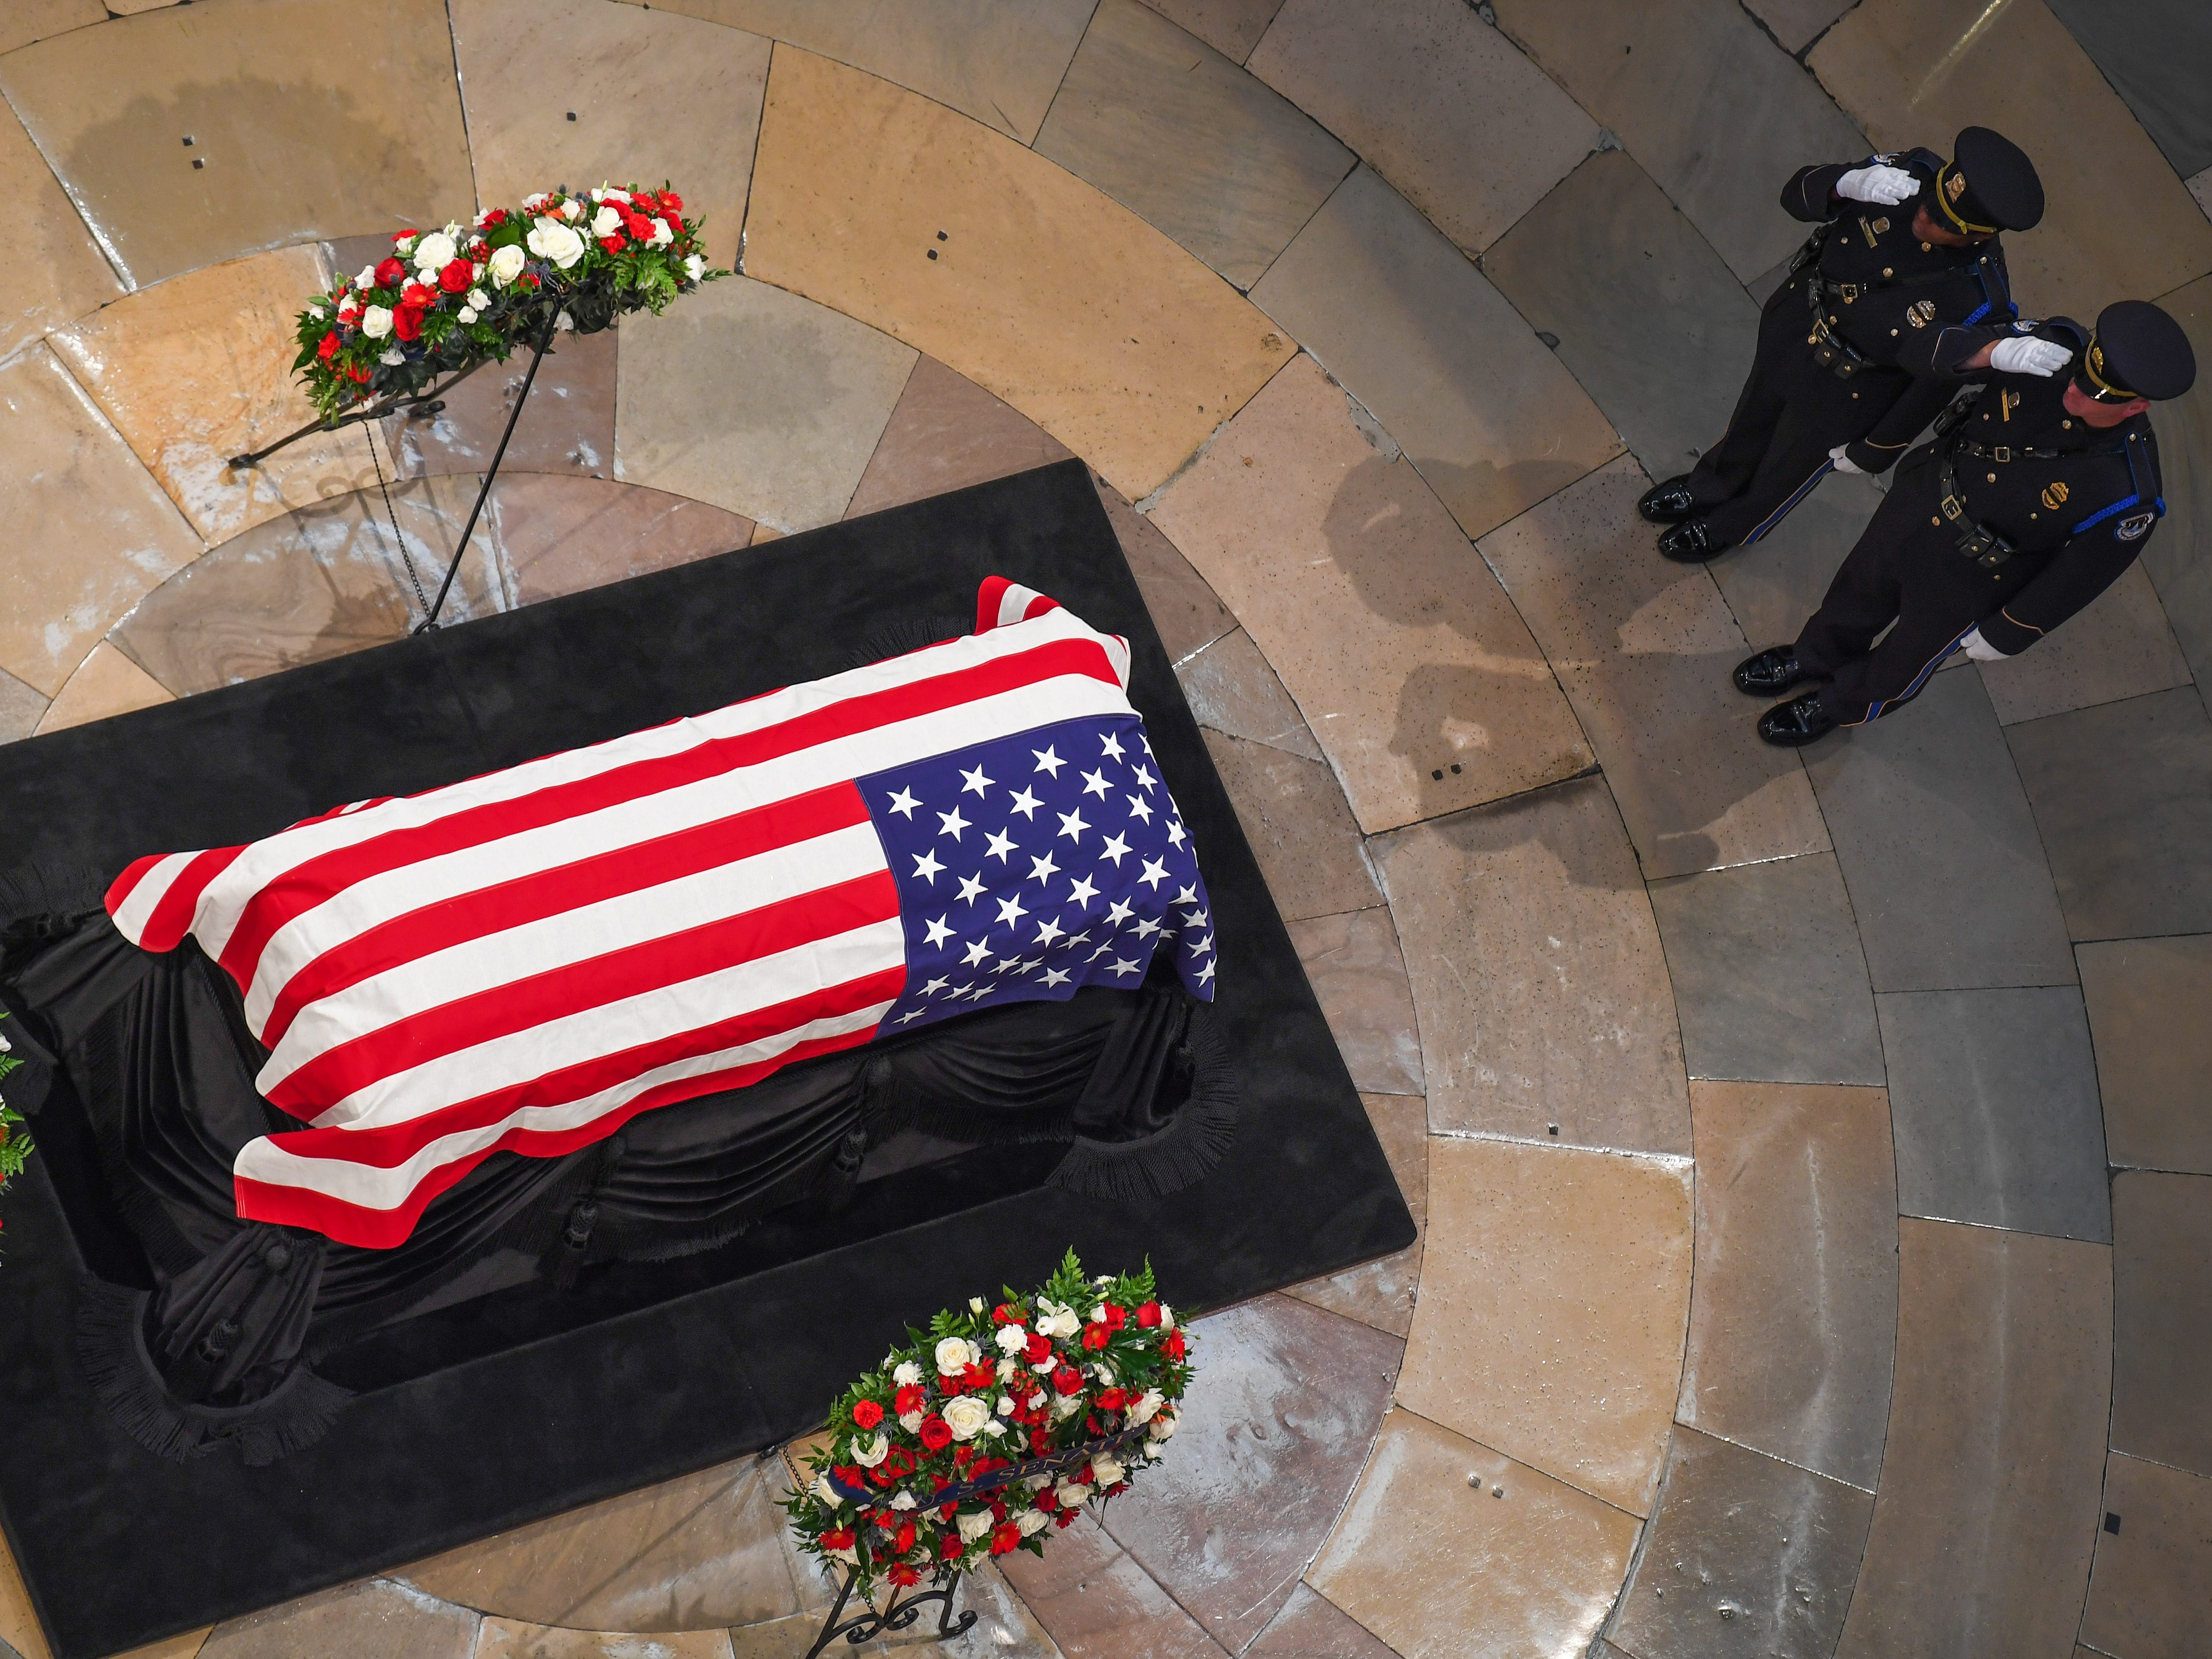 8/31/18 2:00:47 PM -- Washington, DC, U.S.A  -- The body of John McCain lying in state at the U.S. Capitol in Washington on Aug. 31, 2018 in Washington. Sen. McCain died on Aug. 25. --    Photo by Jack Gruber, USA TODAY Staff ORG XMIT:  JG 137435 McCain U.S. Capi 8/31 (Via OlyDrop)